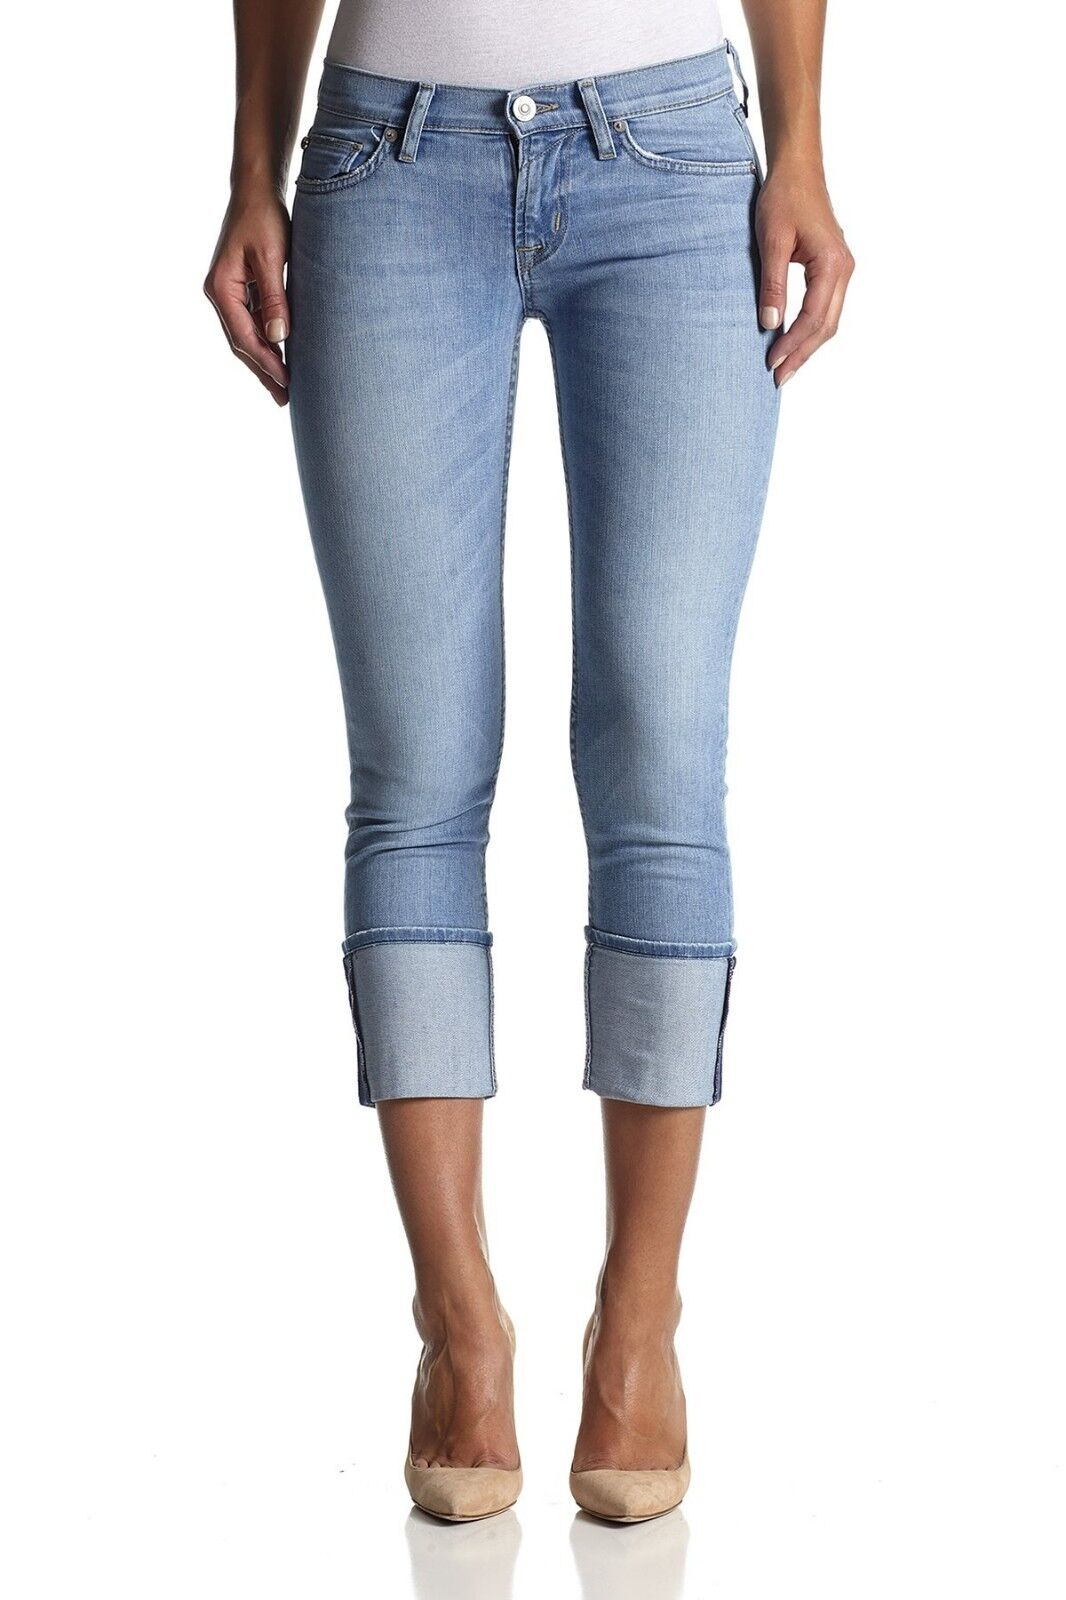 NWT HUDSON GLASS SHORE MUSE Cropped Skinny Jeans w  cuff BRAND NEW WC421DXA - 30